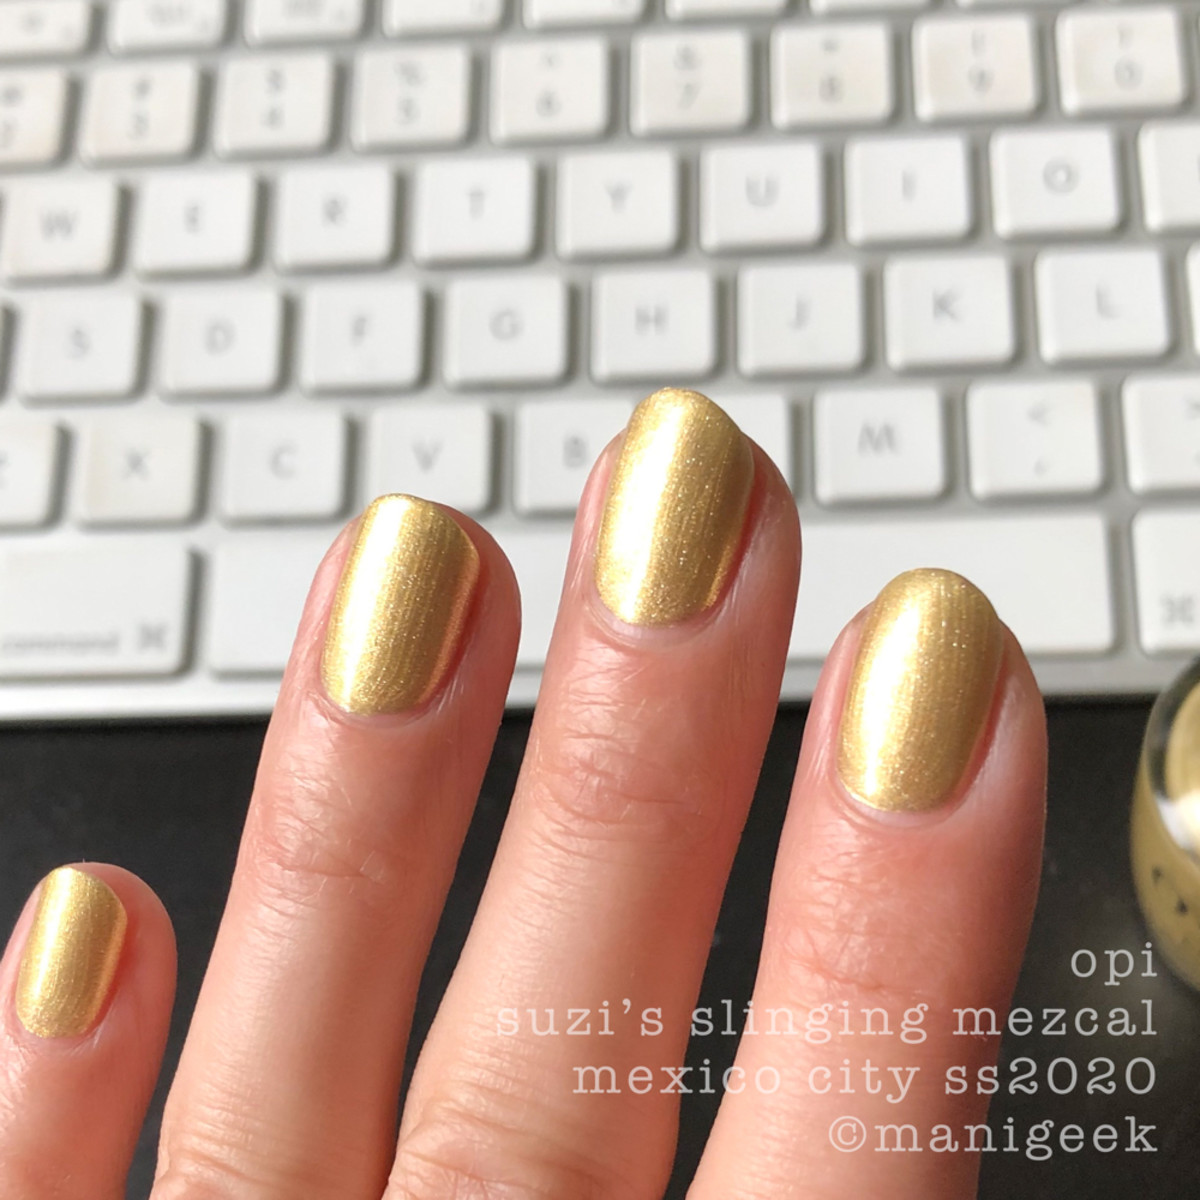 OPI Suzi's Slinging Mezcal - OPI Mexico City Swatches Review 2020